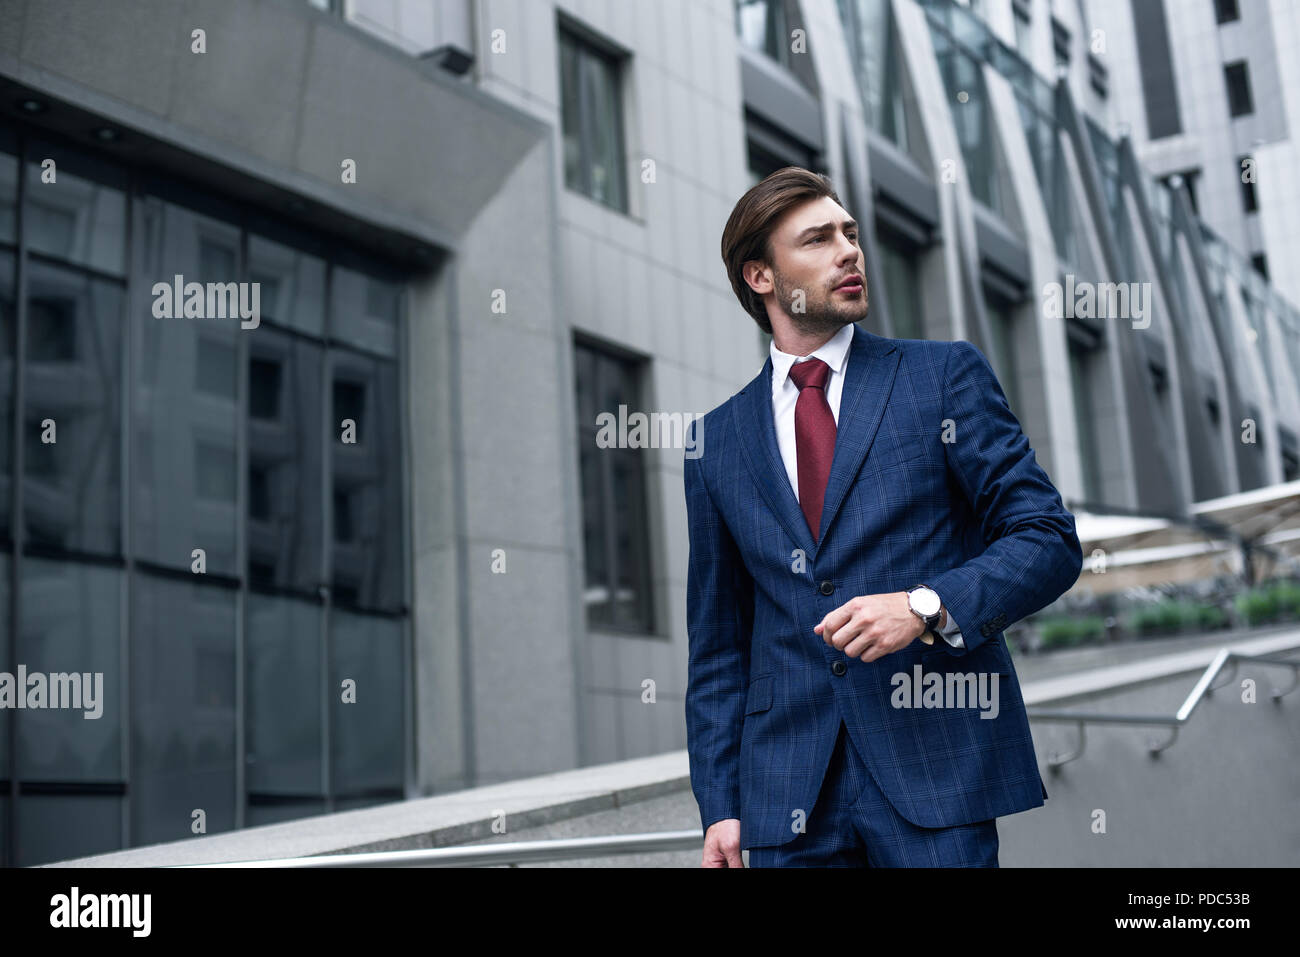 e1587bfe3eb4 Confident businessman. Confident young man in full suit adjusting his  sleeve and looking away while